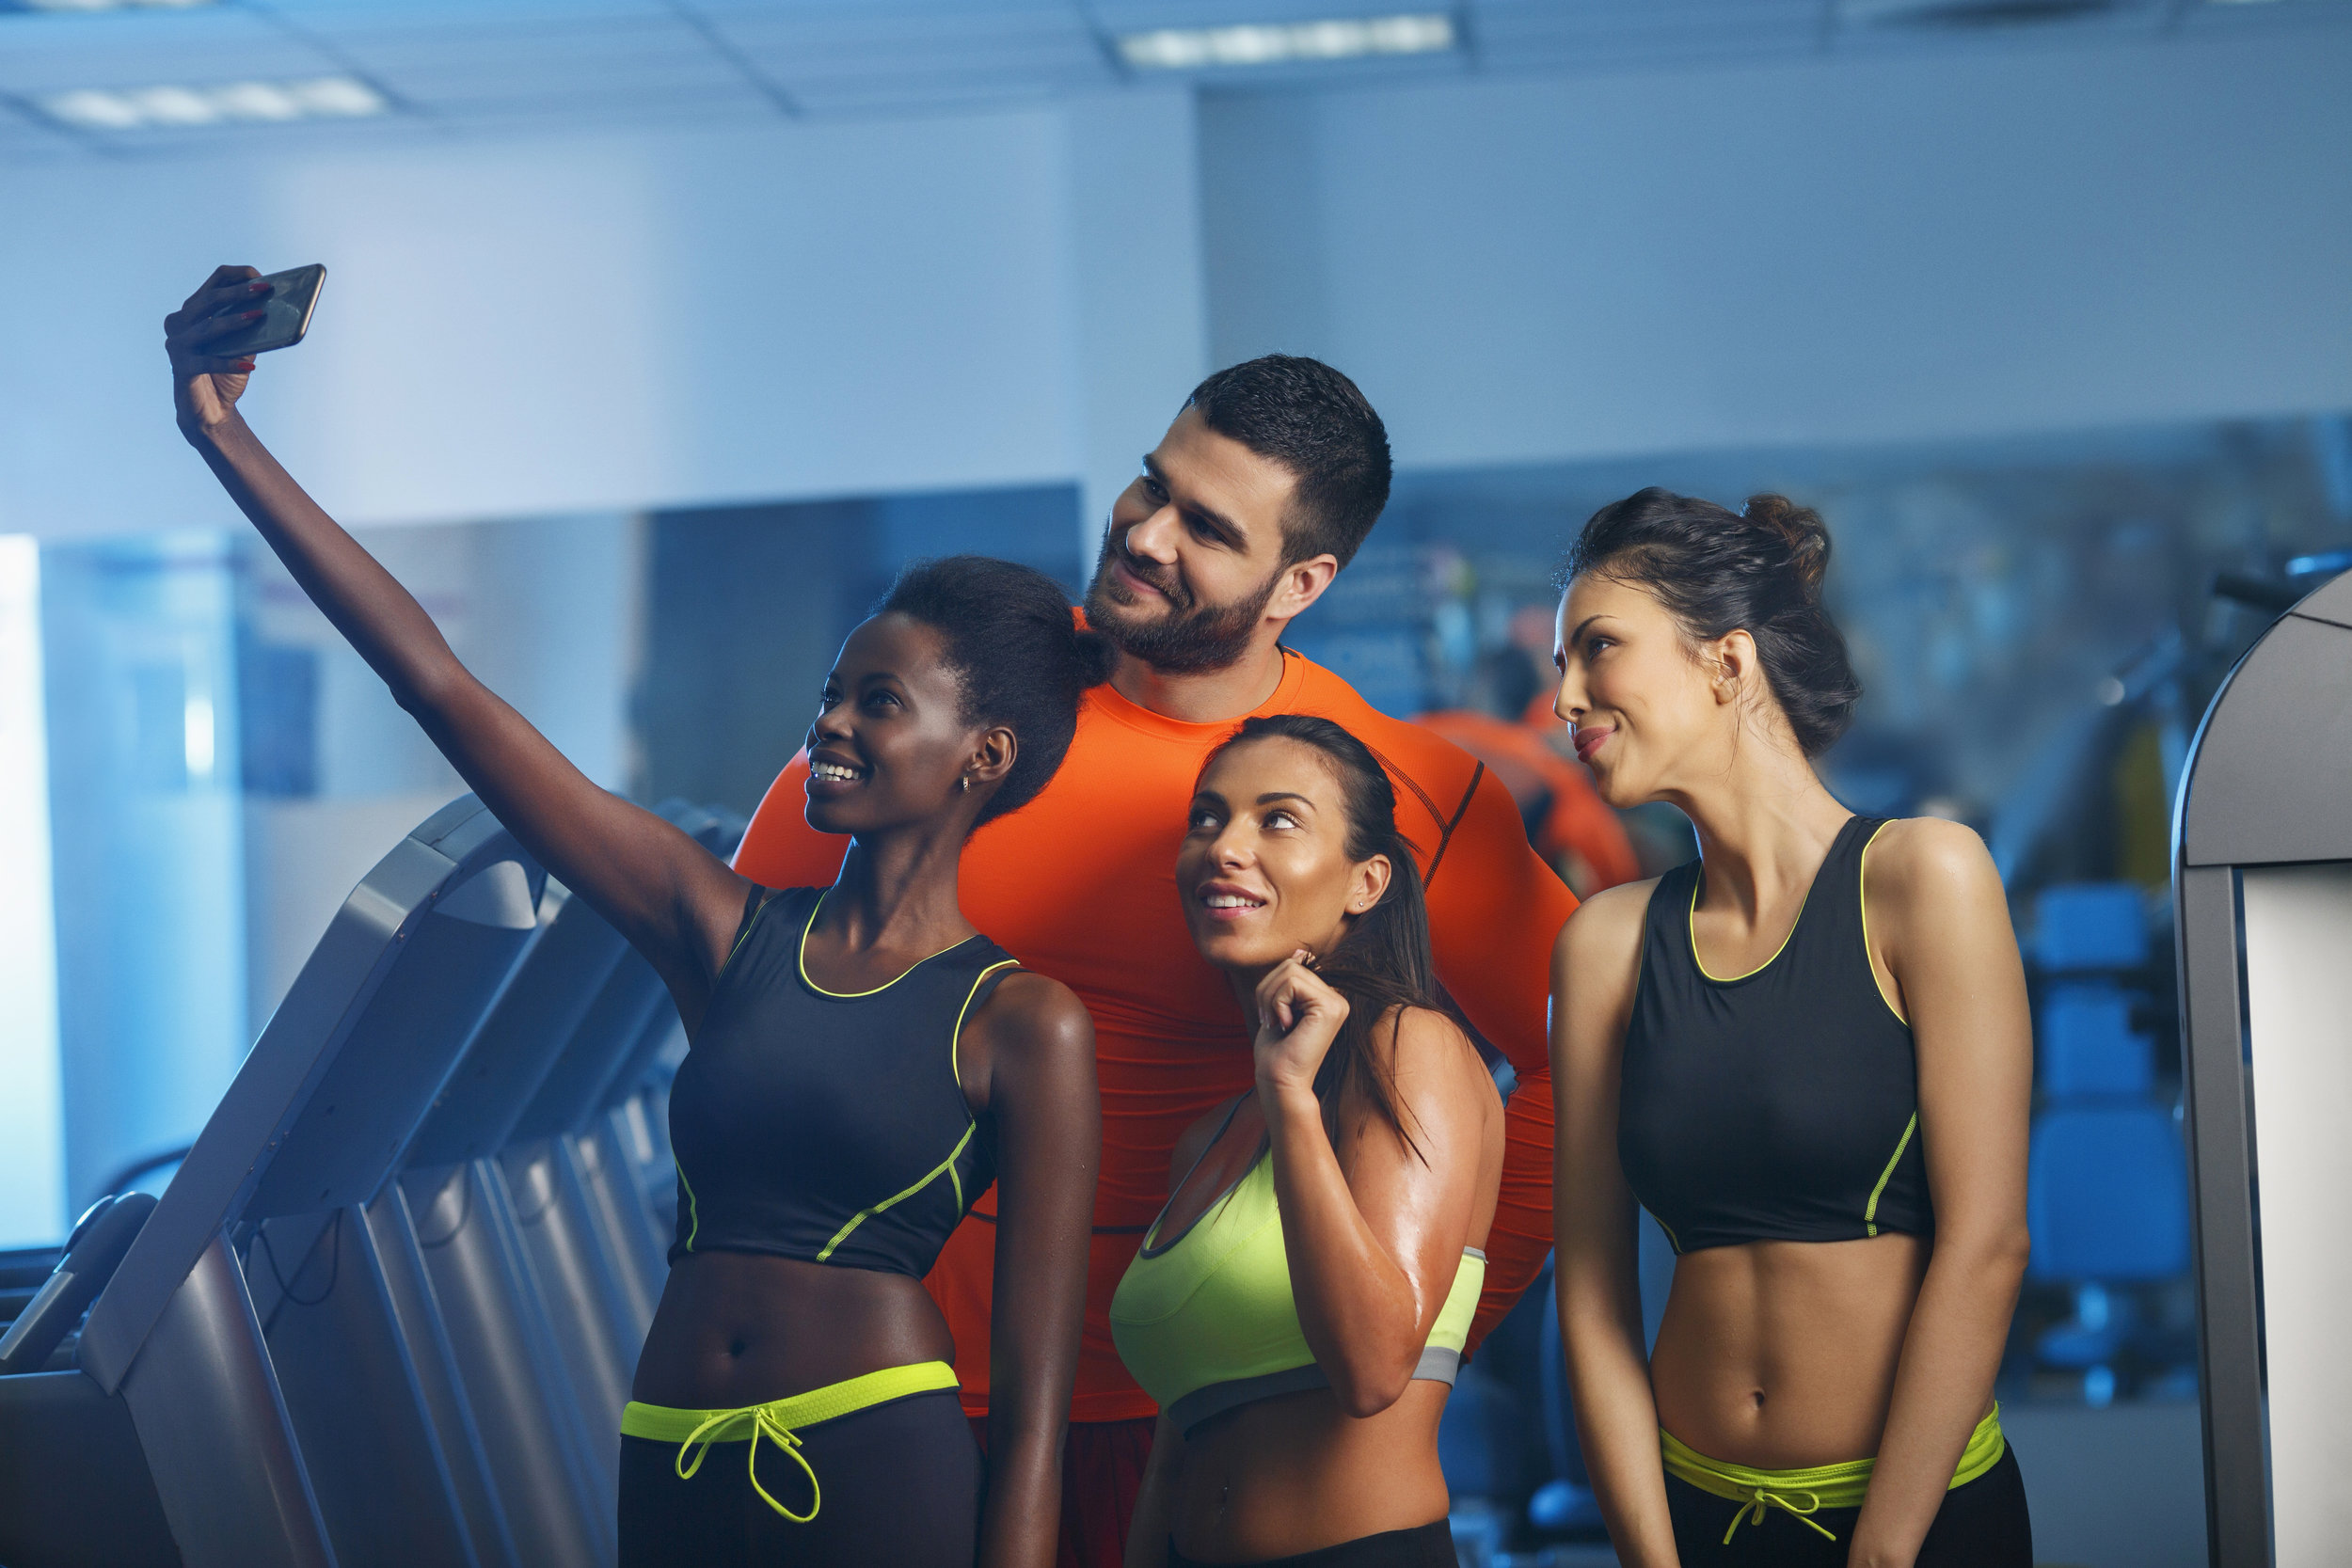 Branding your gym or fitness club on social media is crucial to success in an increasingly digital world.